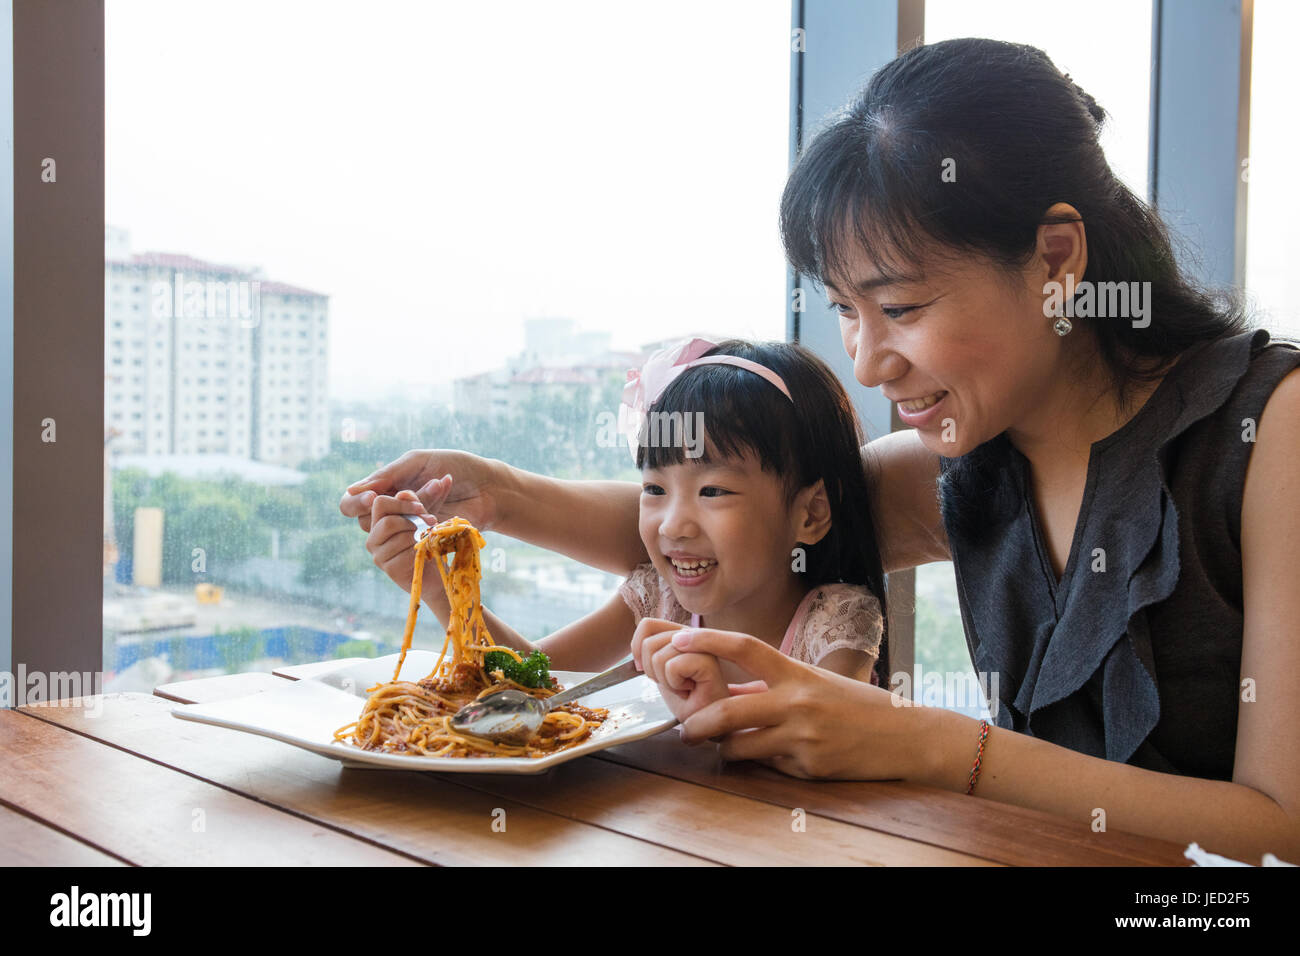 Asian Chinese mother and daughter eating spaghetti bolognese in the restaurant. - Stock Image